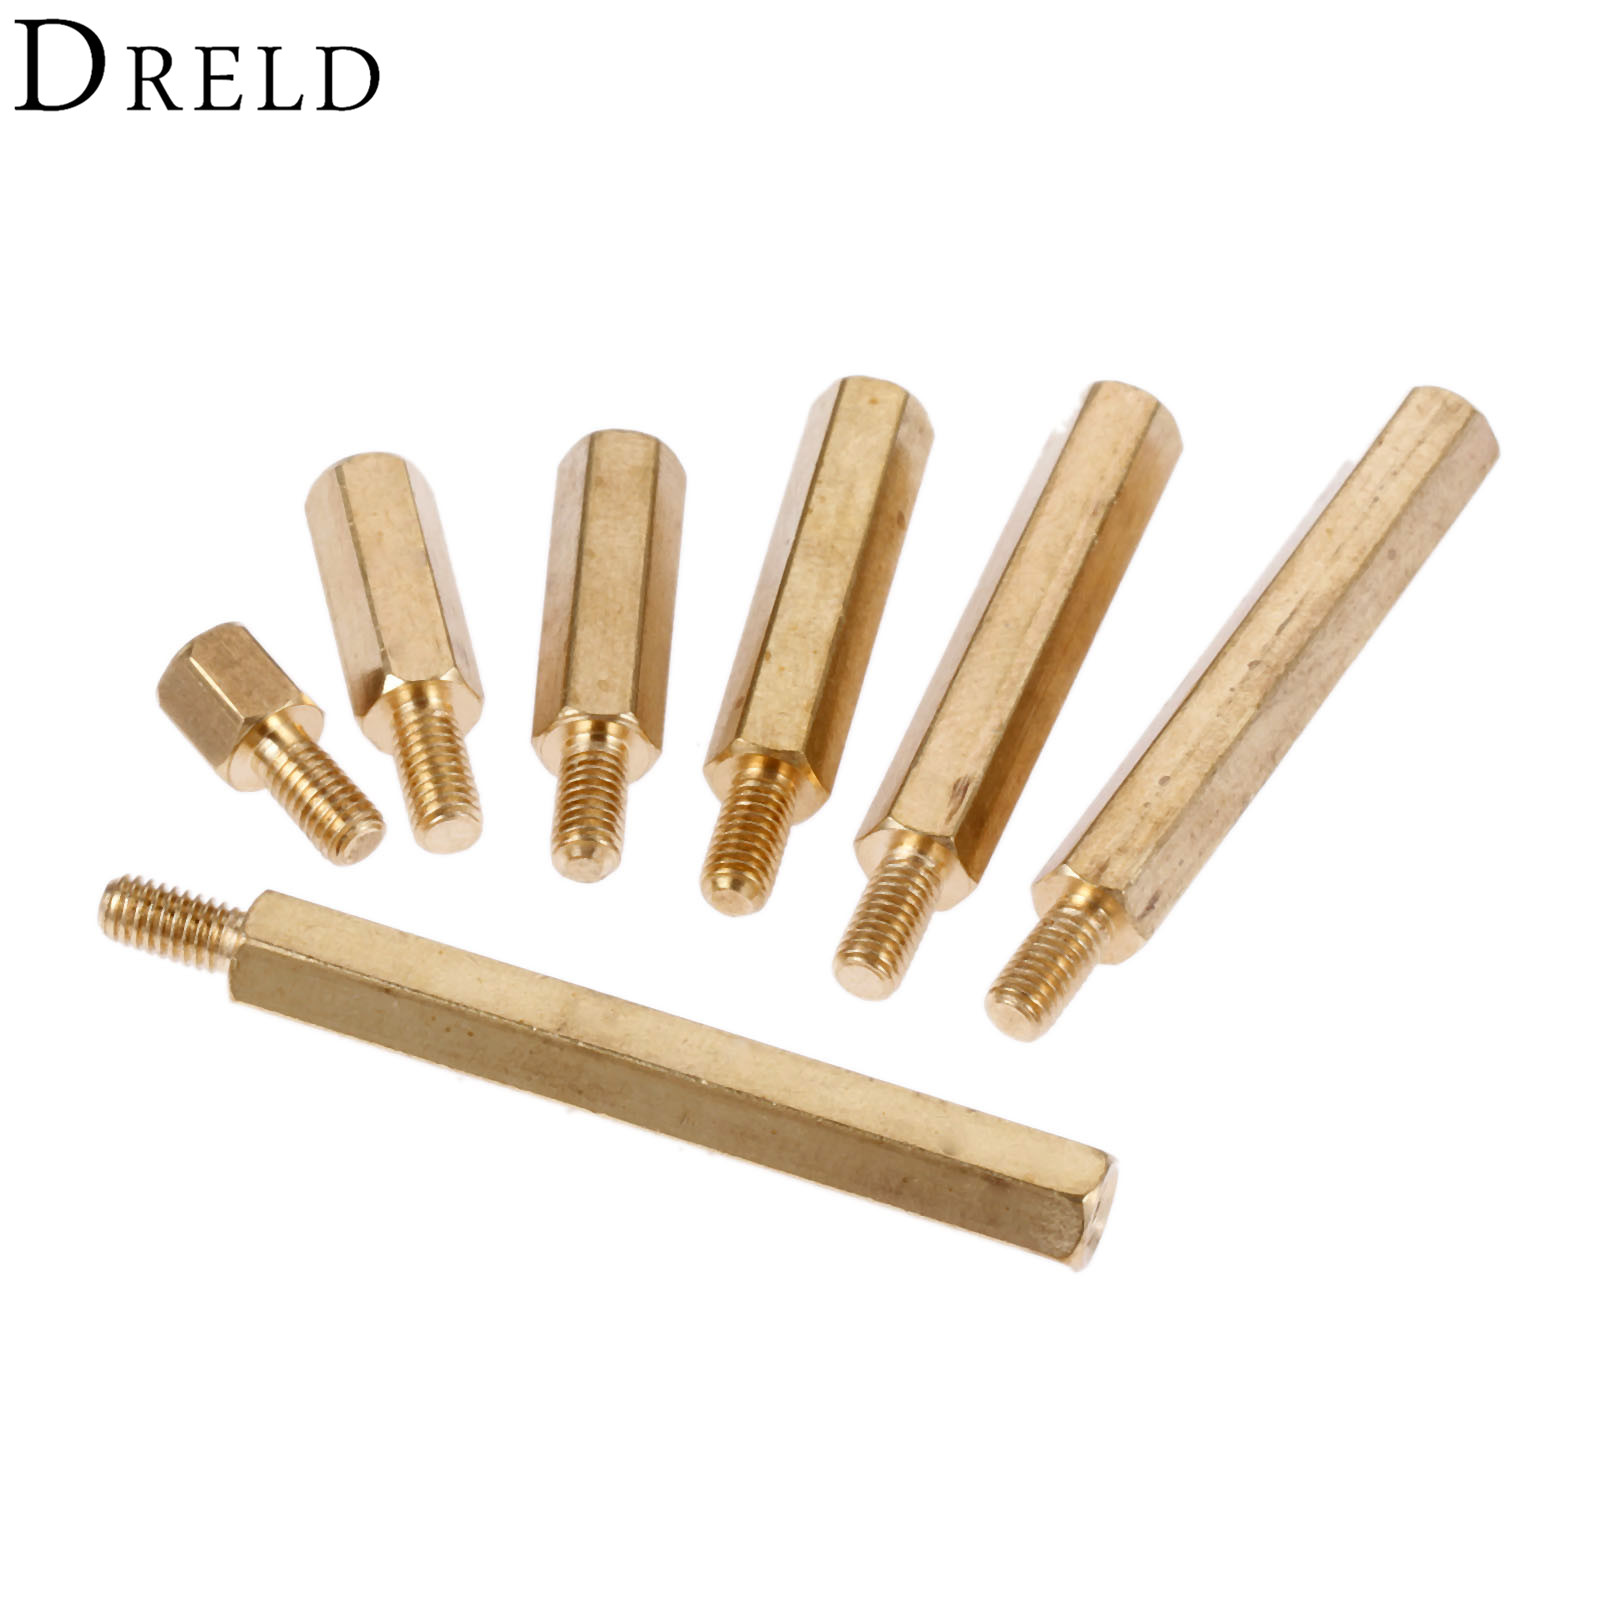 DRELD 10Pcs M3 Male Hex Hexagonal Brass Pillars Standoff Spacer M3 12+6/15+6/20+6/25+6/30+6/35+6MM Stud Spacer Hollow Pillars 100pcs m3 nylon black standoff m3 5 6 8 10 12 15 18 20 25 30 35 40 6 male to female nylon spacer spacing screws